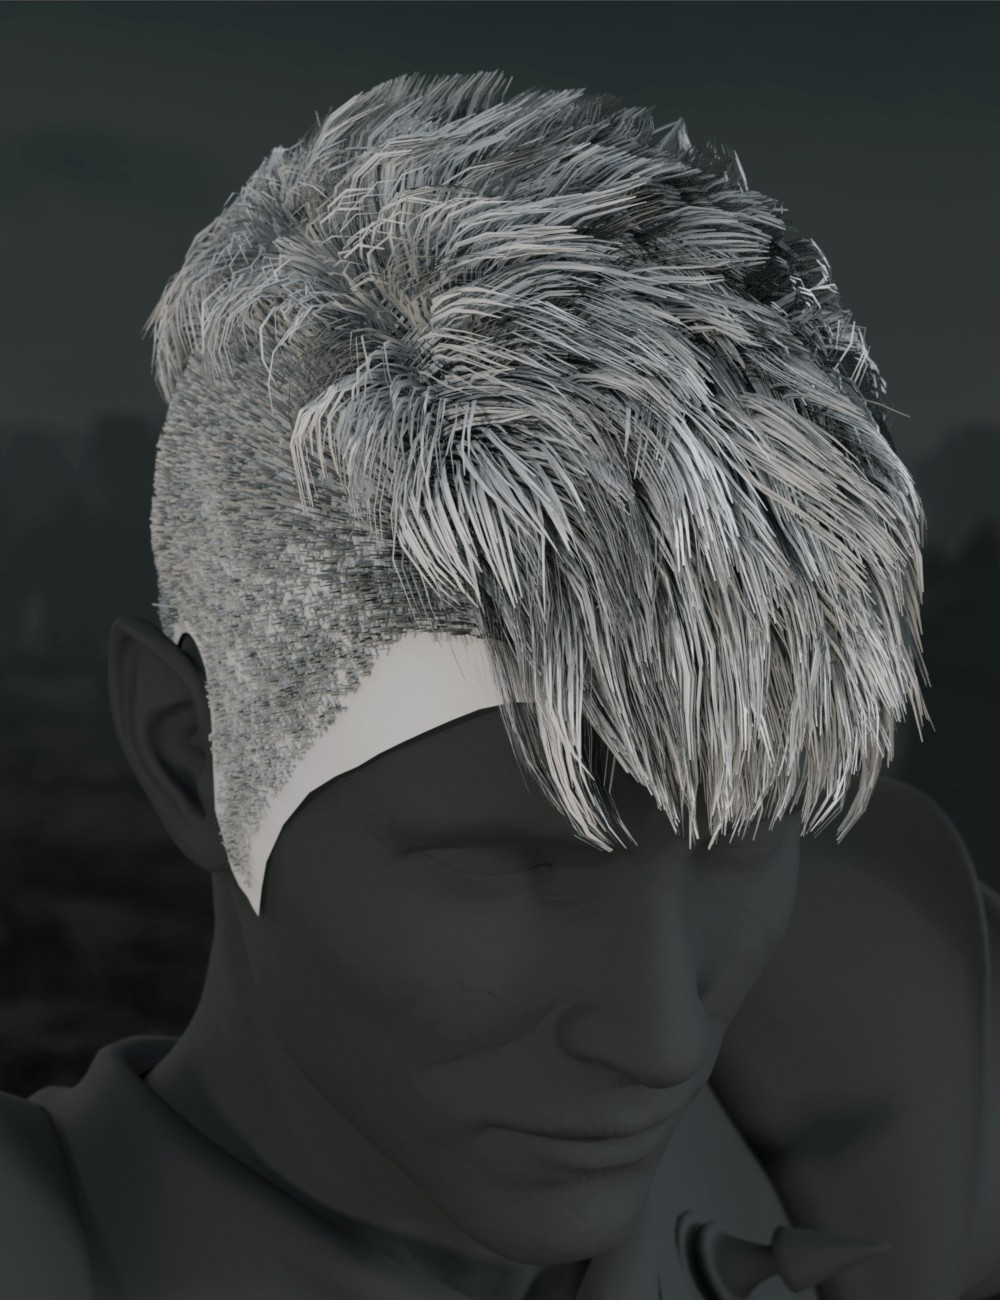 Download Daz Studio 3 For Free Daz 3d Asher Hair For